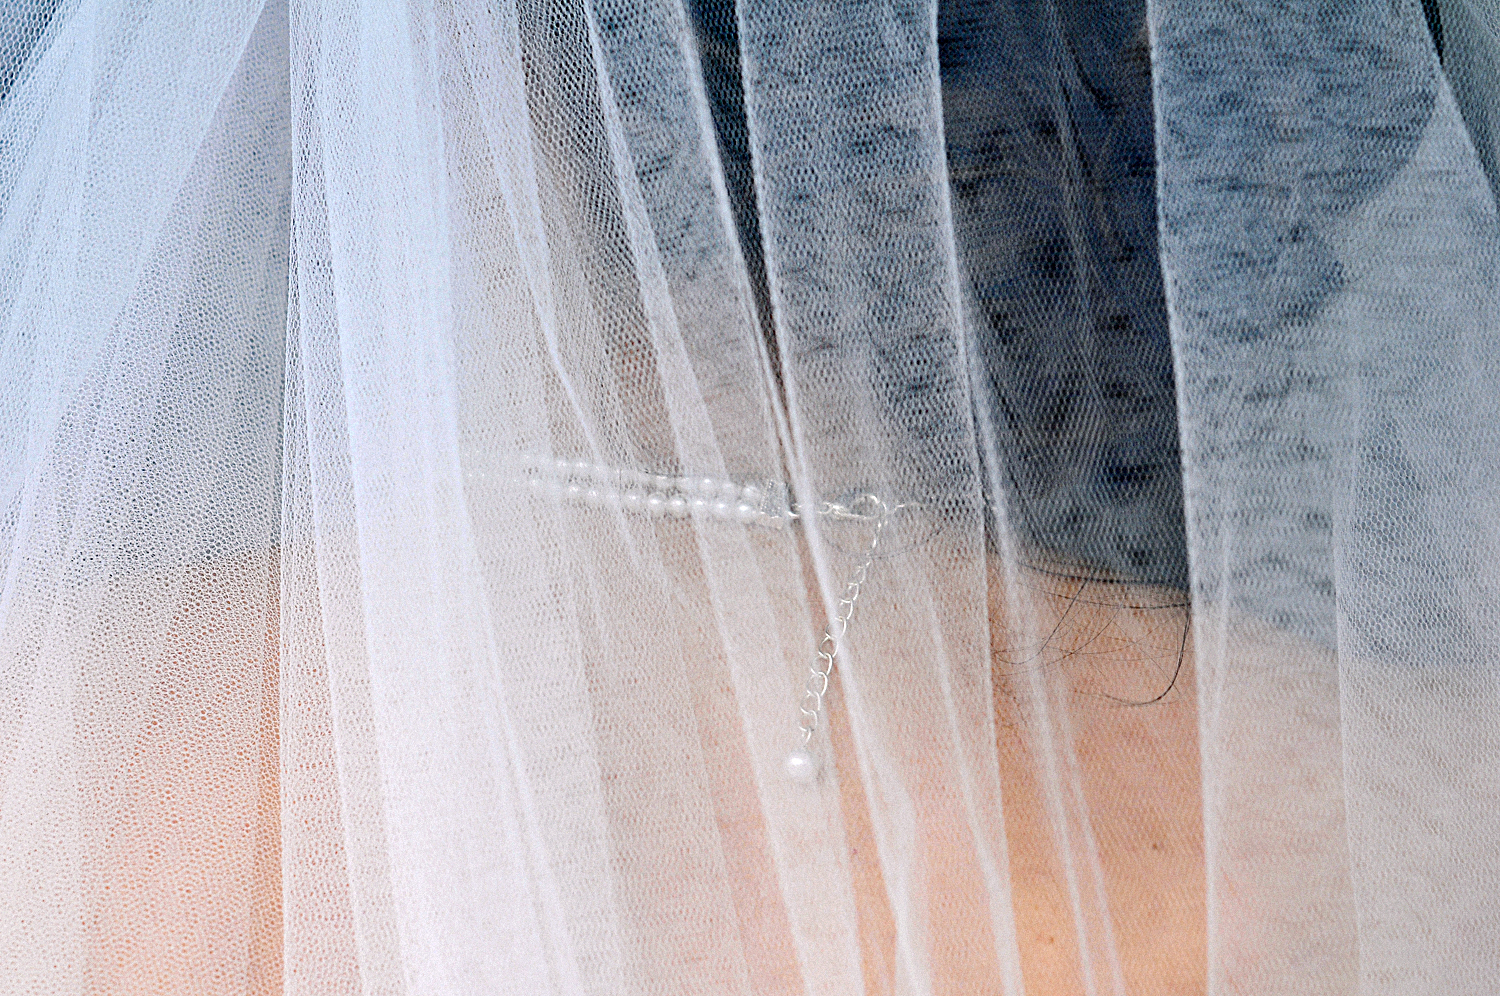 A wedding necklace and veil